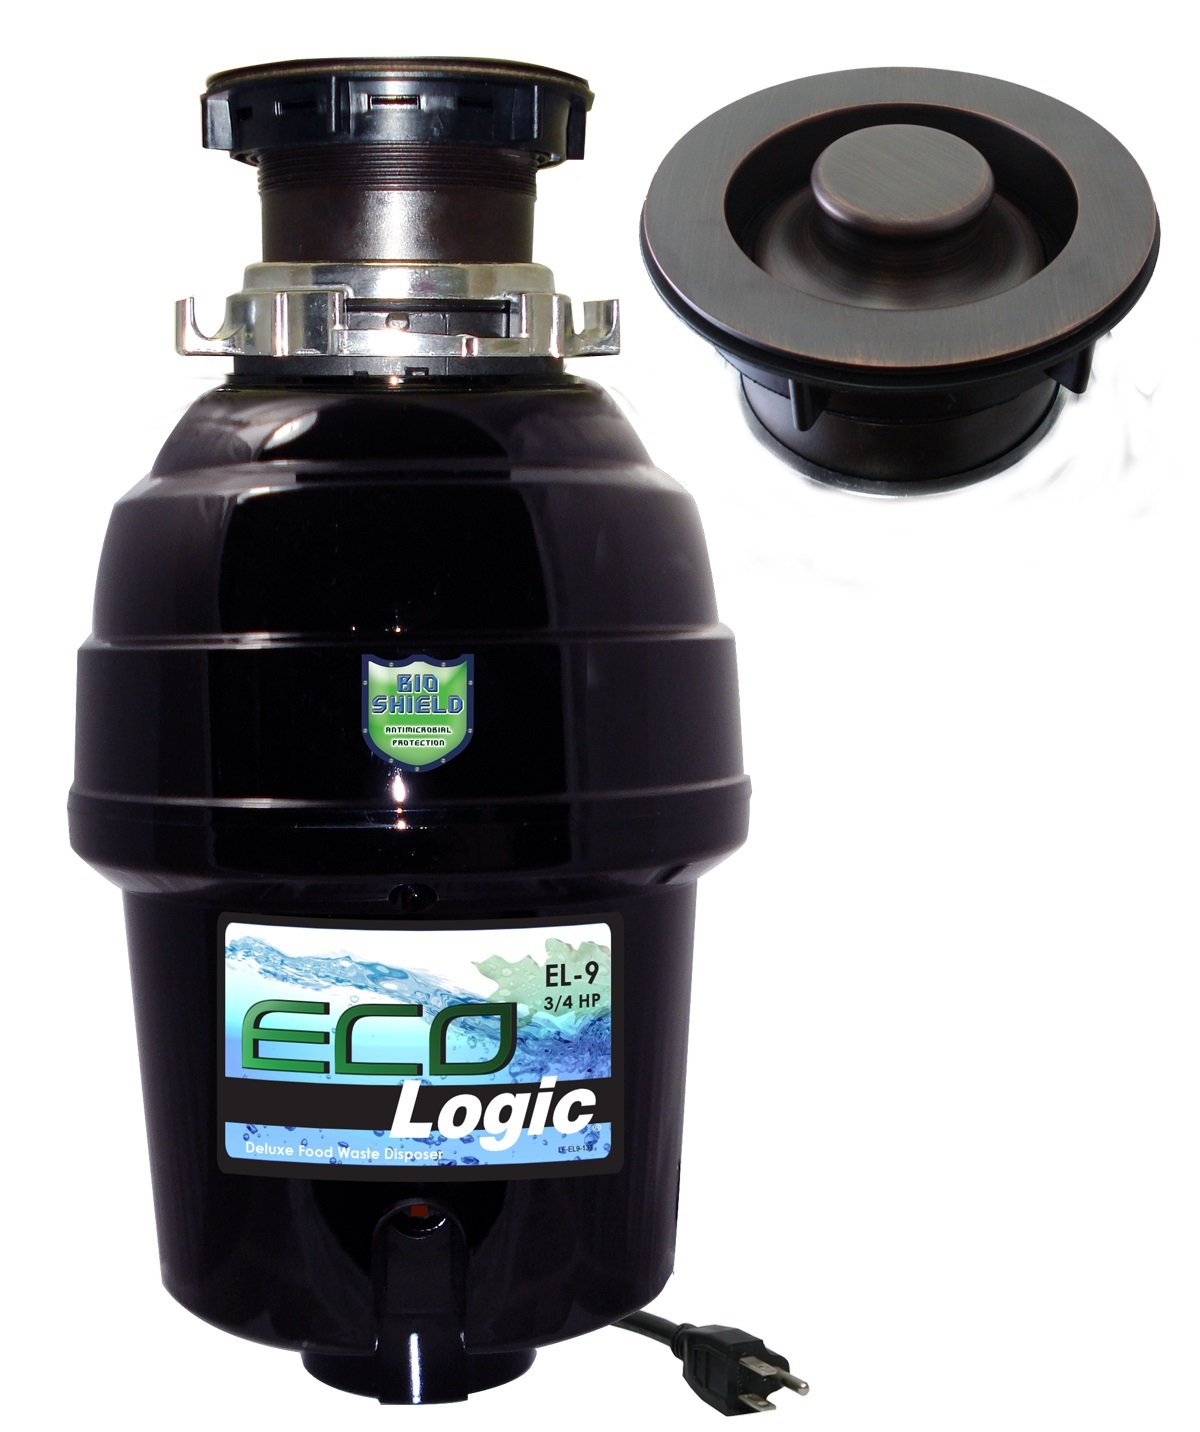 Eco Logic EL-9-DS-OR 9 Deluxe Designer Series Food Waste Disposer with Oil Rubbed Bronze Sink Flange, 3/4 HP